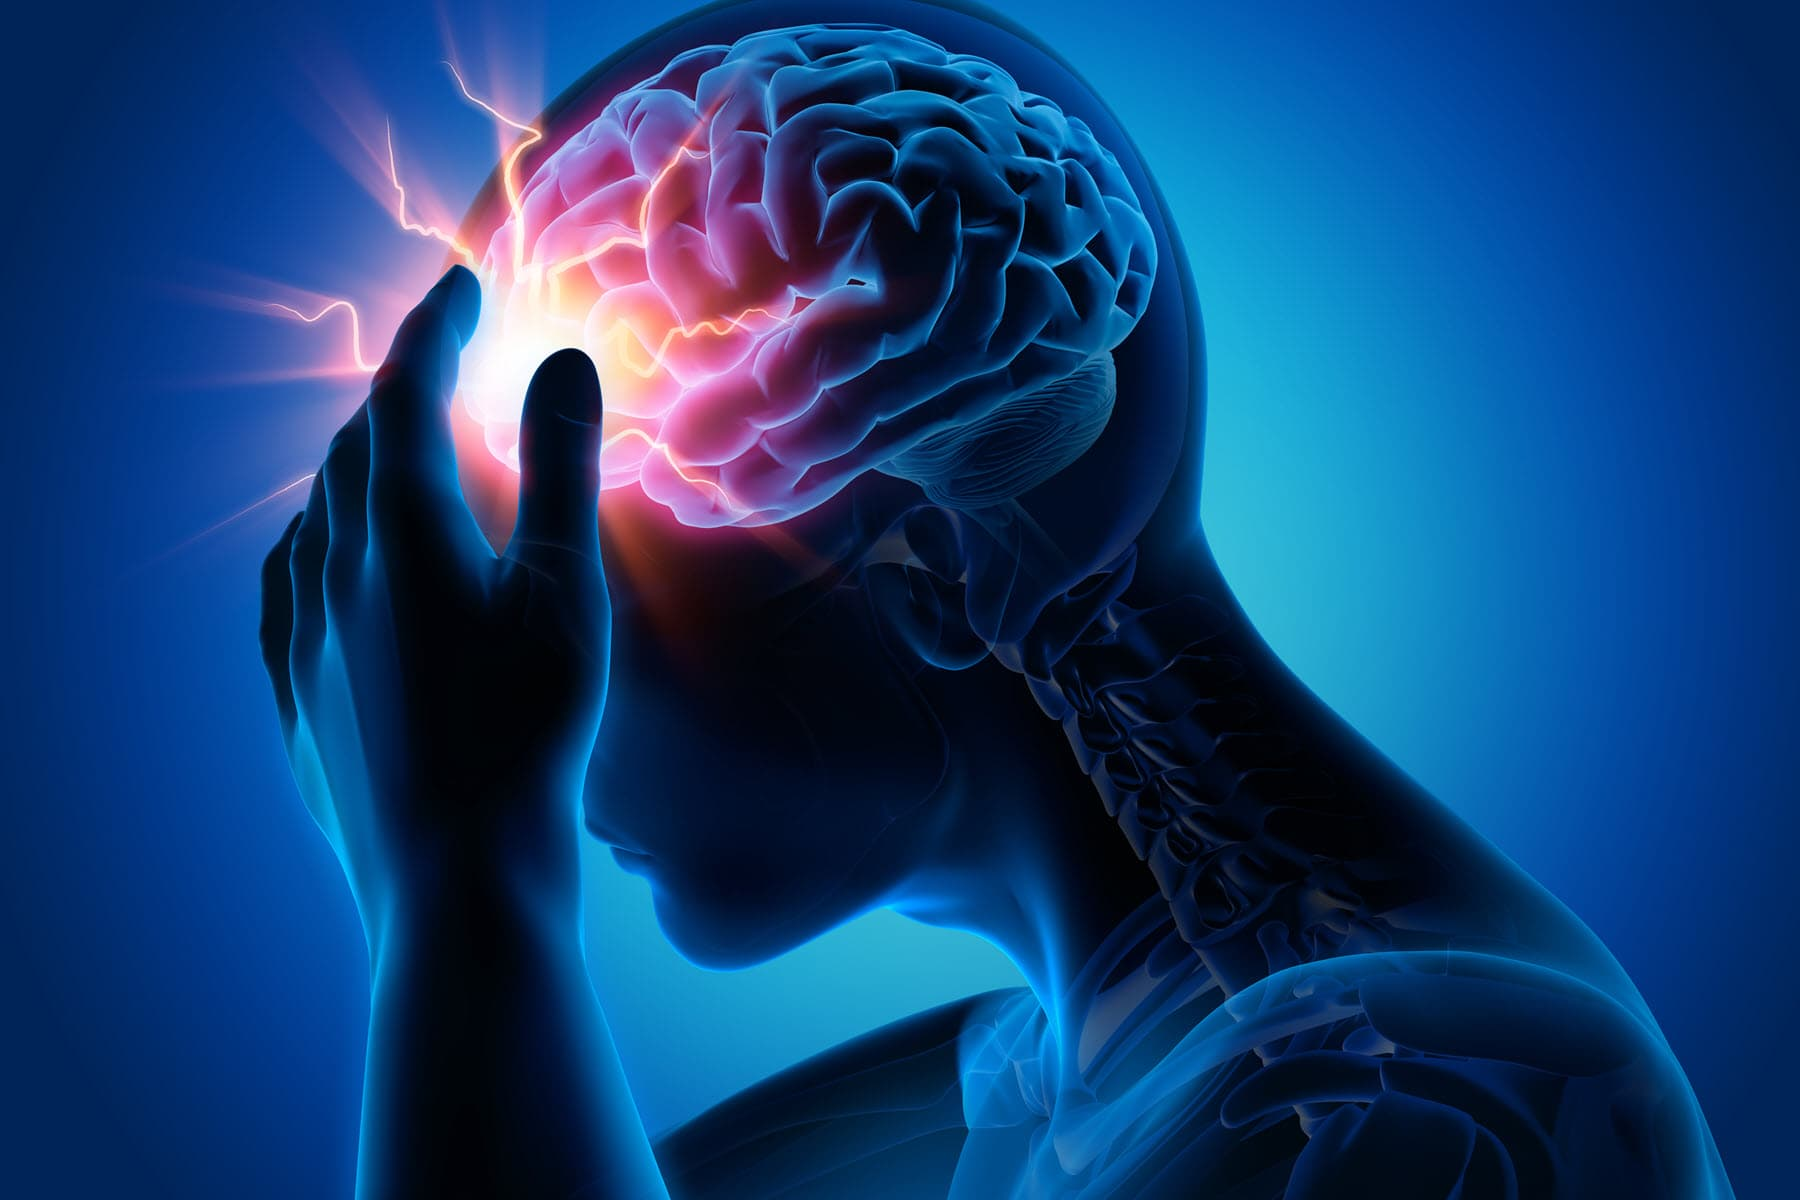 The Roller Coaster Virtual Ride Study brings new perspectives on Migraine